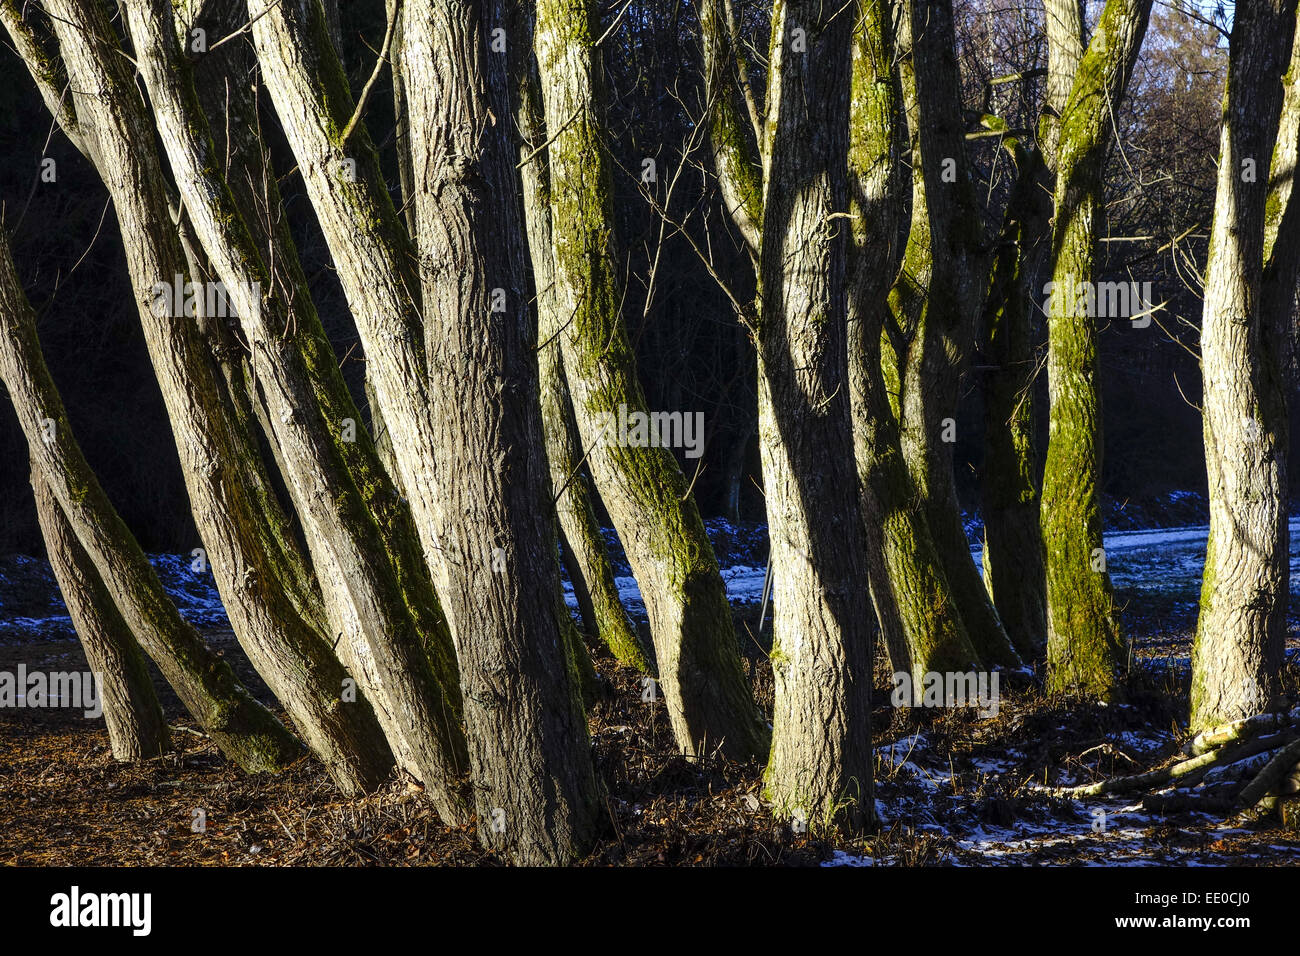 Eine Gruppe Bäume ohne Blätter im Winter, Spätherbst, A group of trees without leaves in winter, late autumn, Winter, Stock Photo